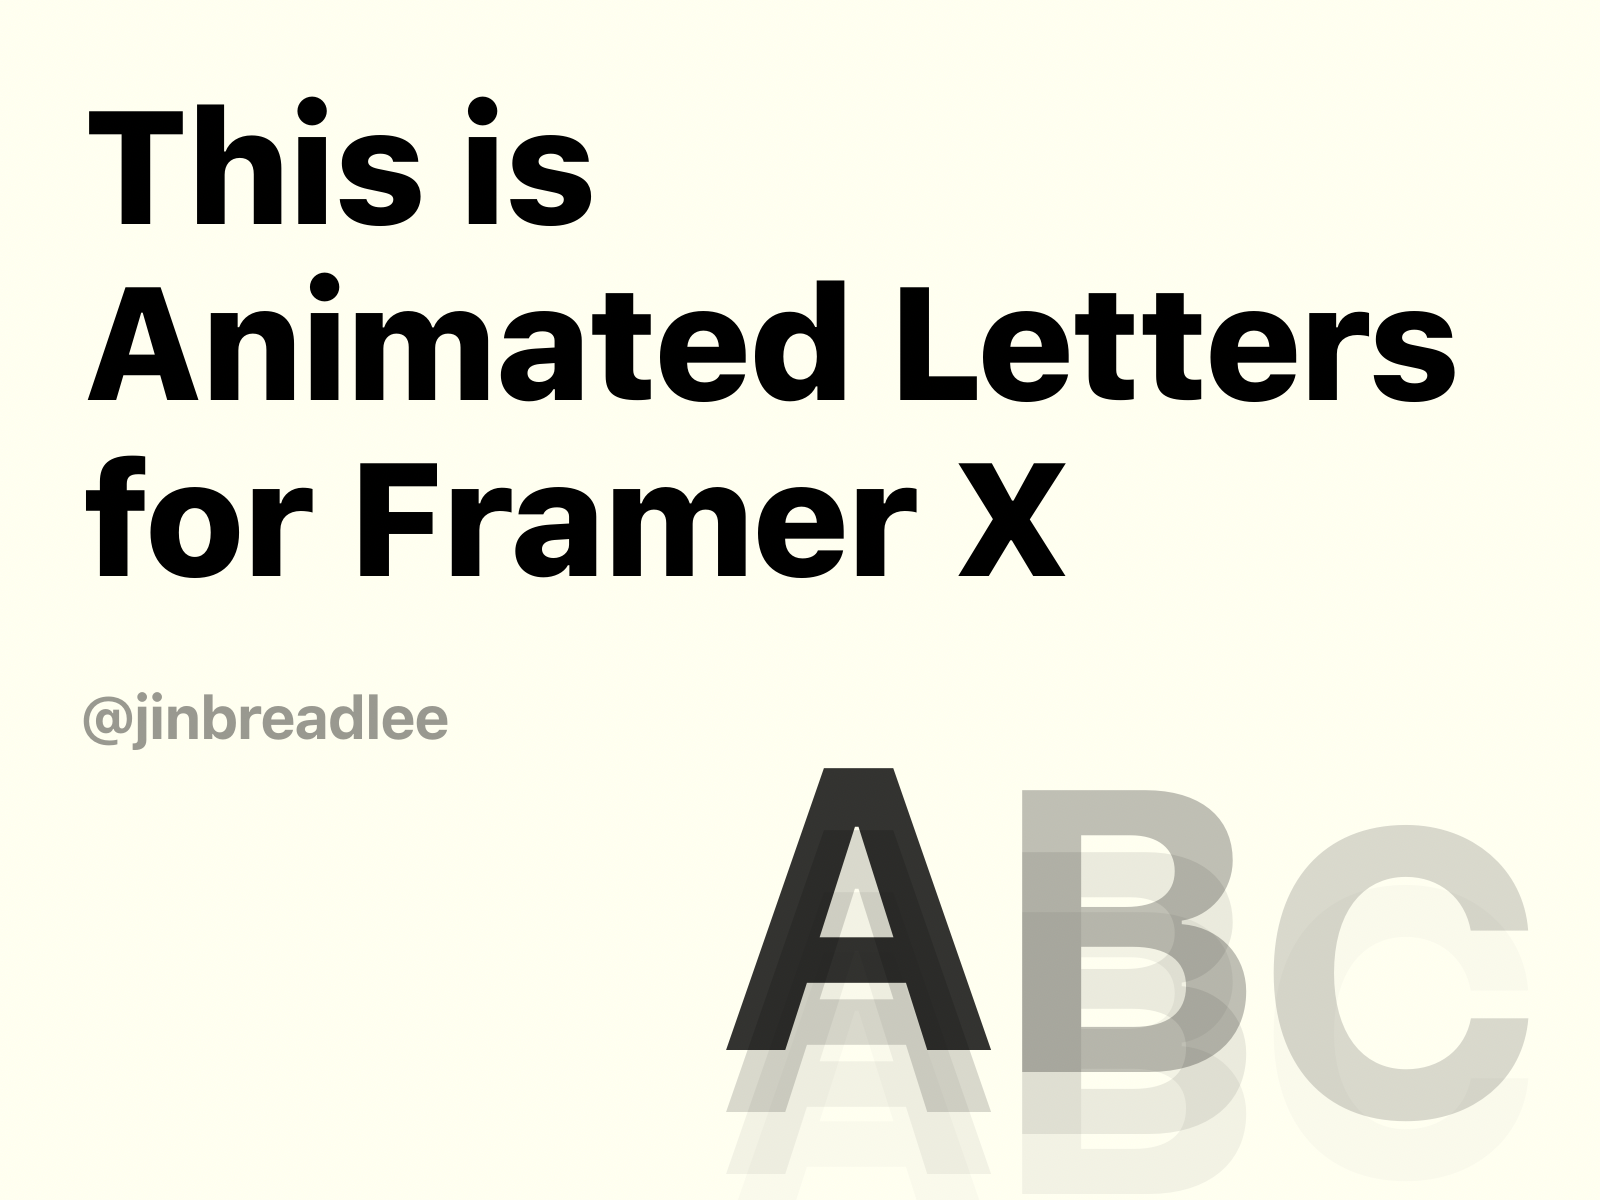 Animated Letters